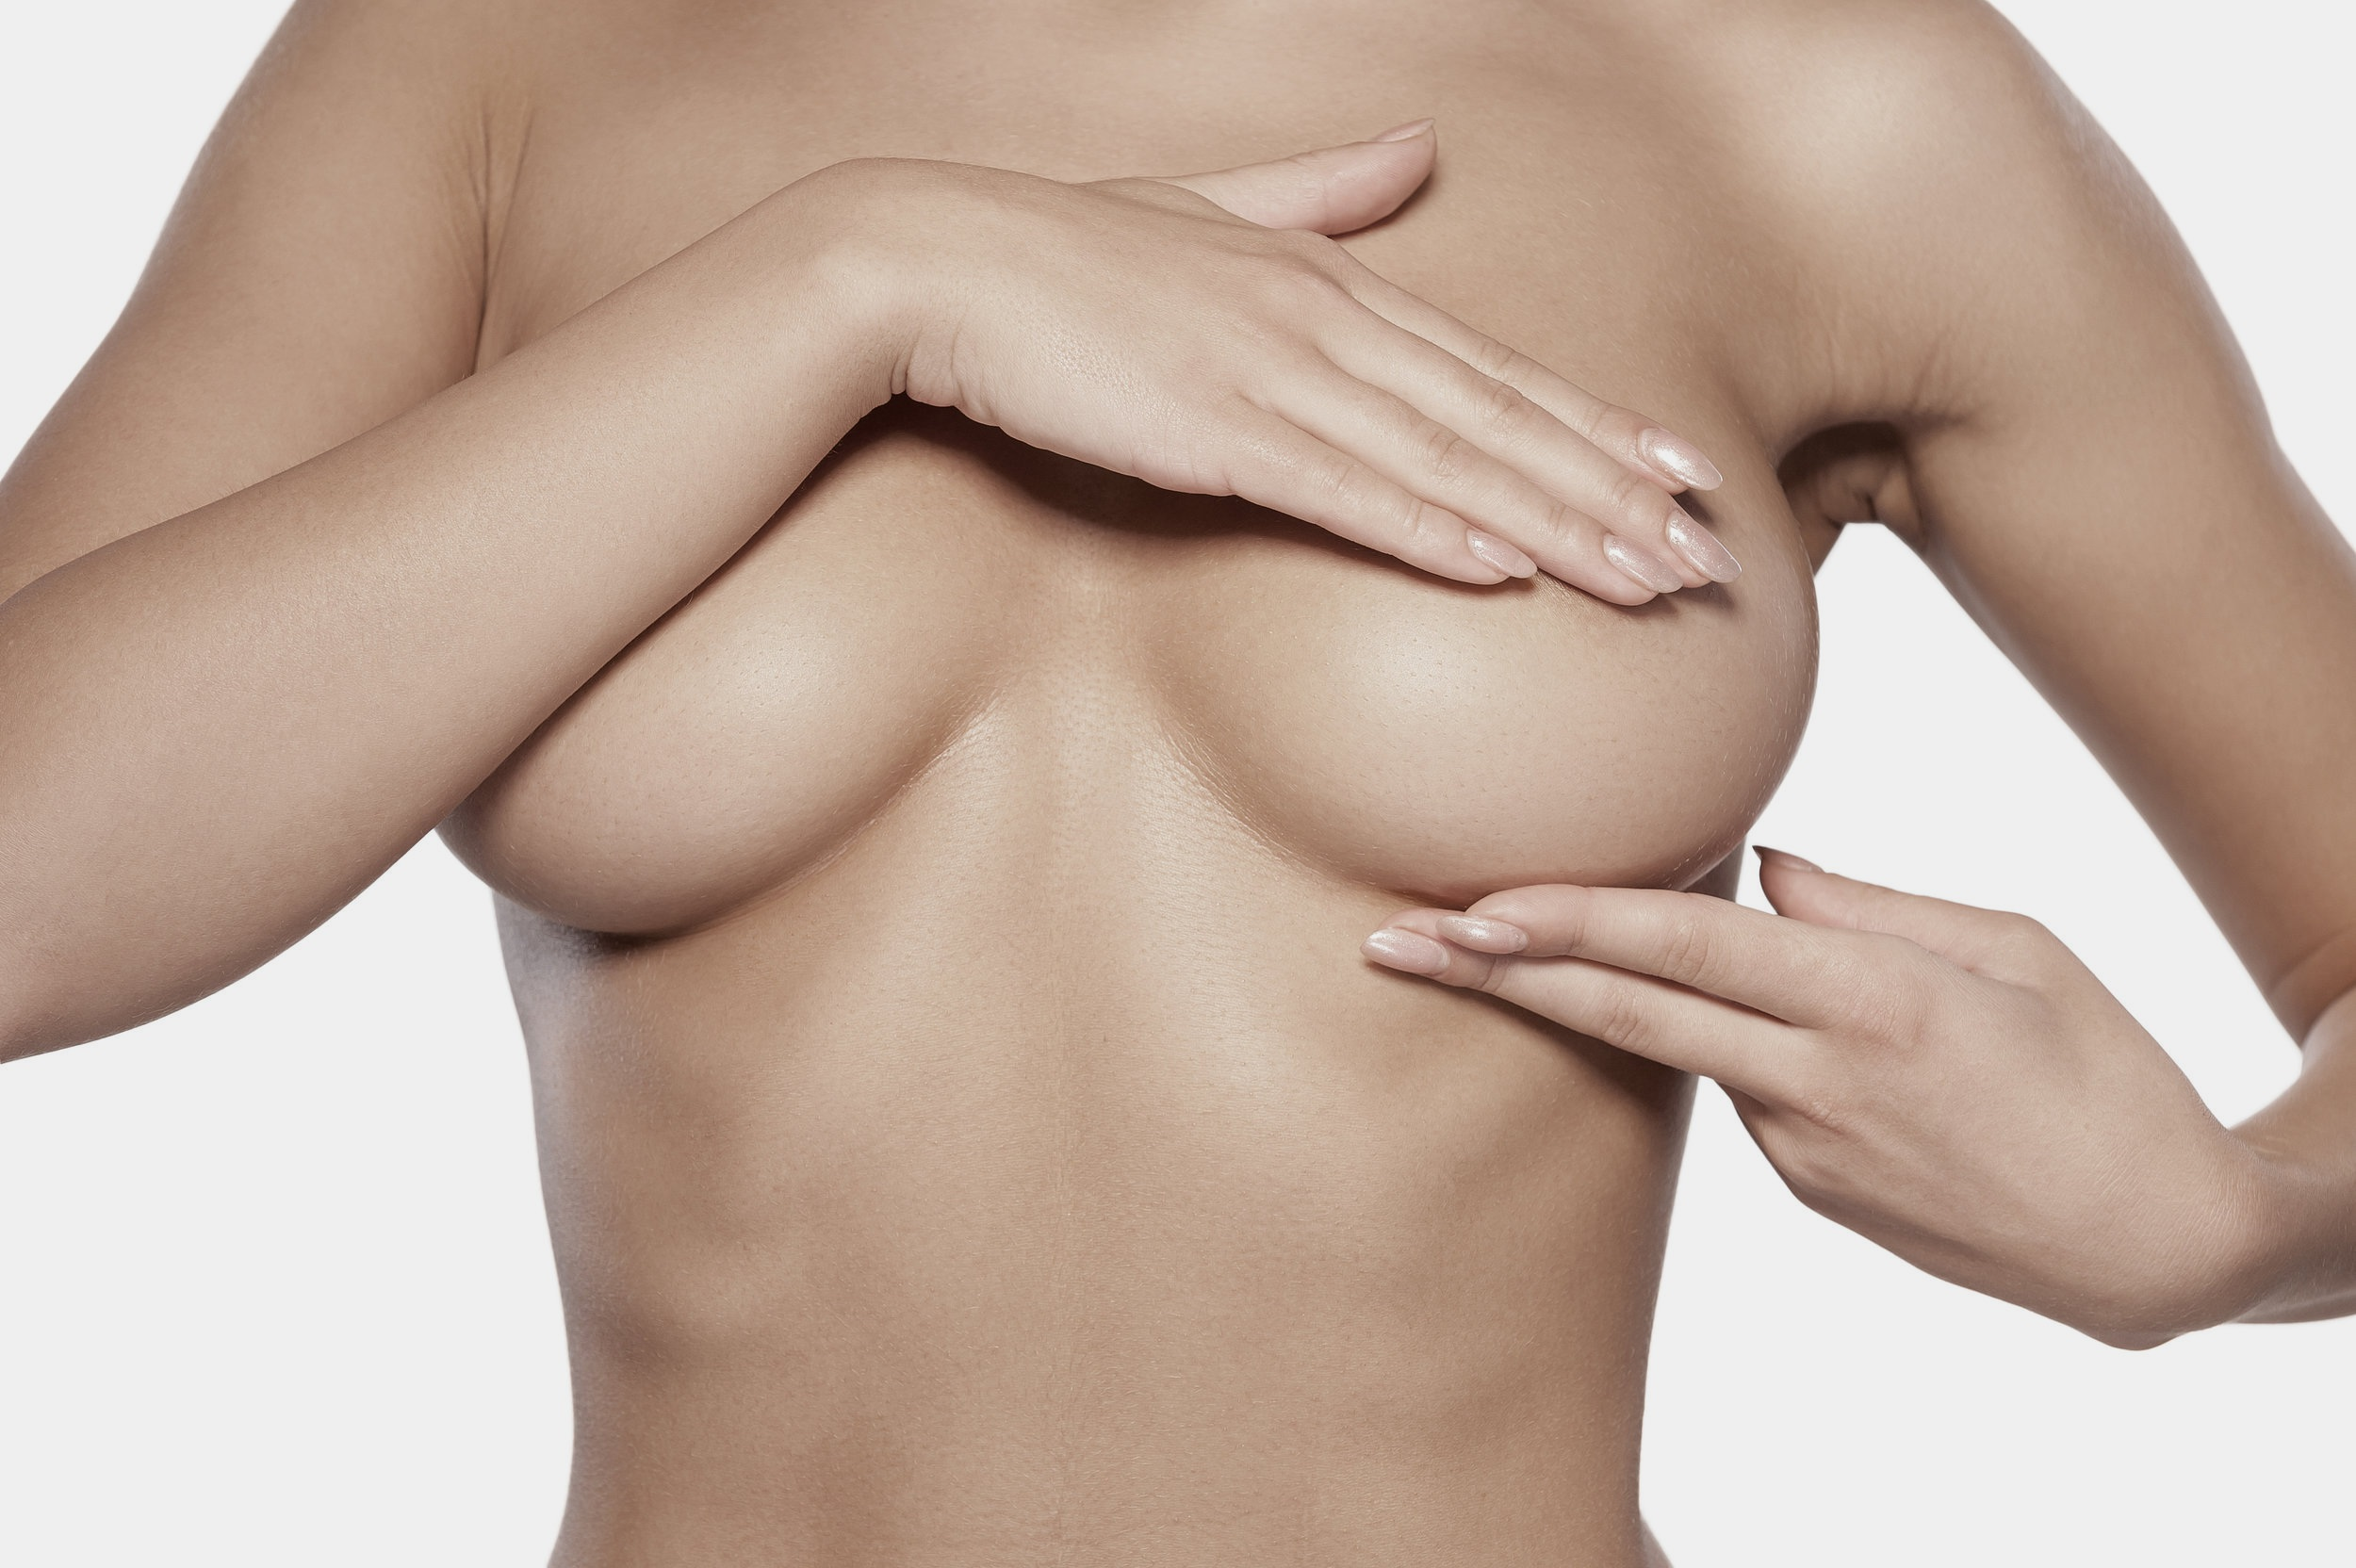 key treatment areas - Breast Reduction will not only improve the look of the breasts, but also typically improves quality of life by relieving back and neck pain, and other physical and lifestyle restrictions. Surgery reduces breast tissue, tightens the skin, repositions the nipple and can improve breast projection.